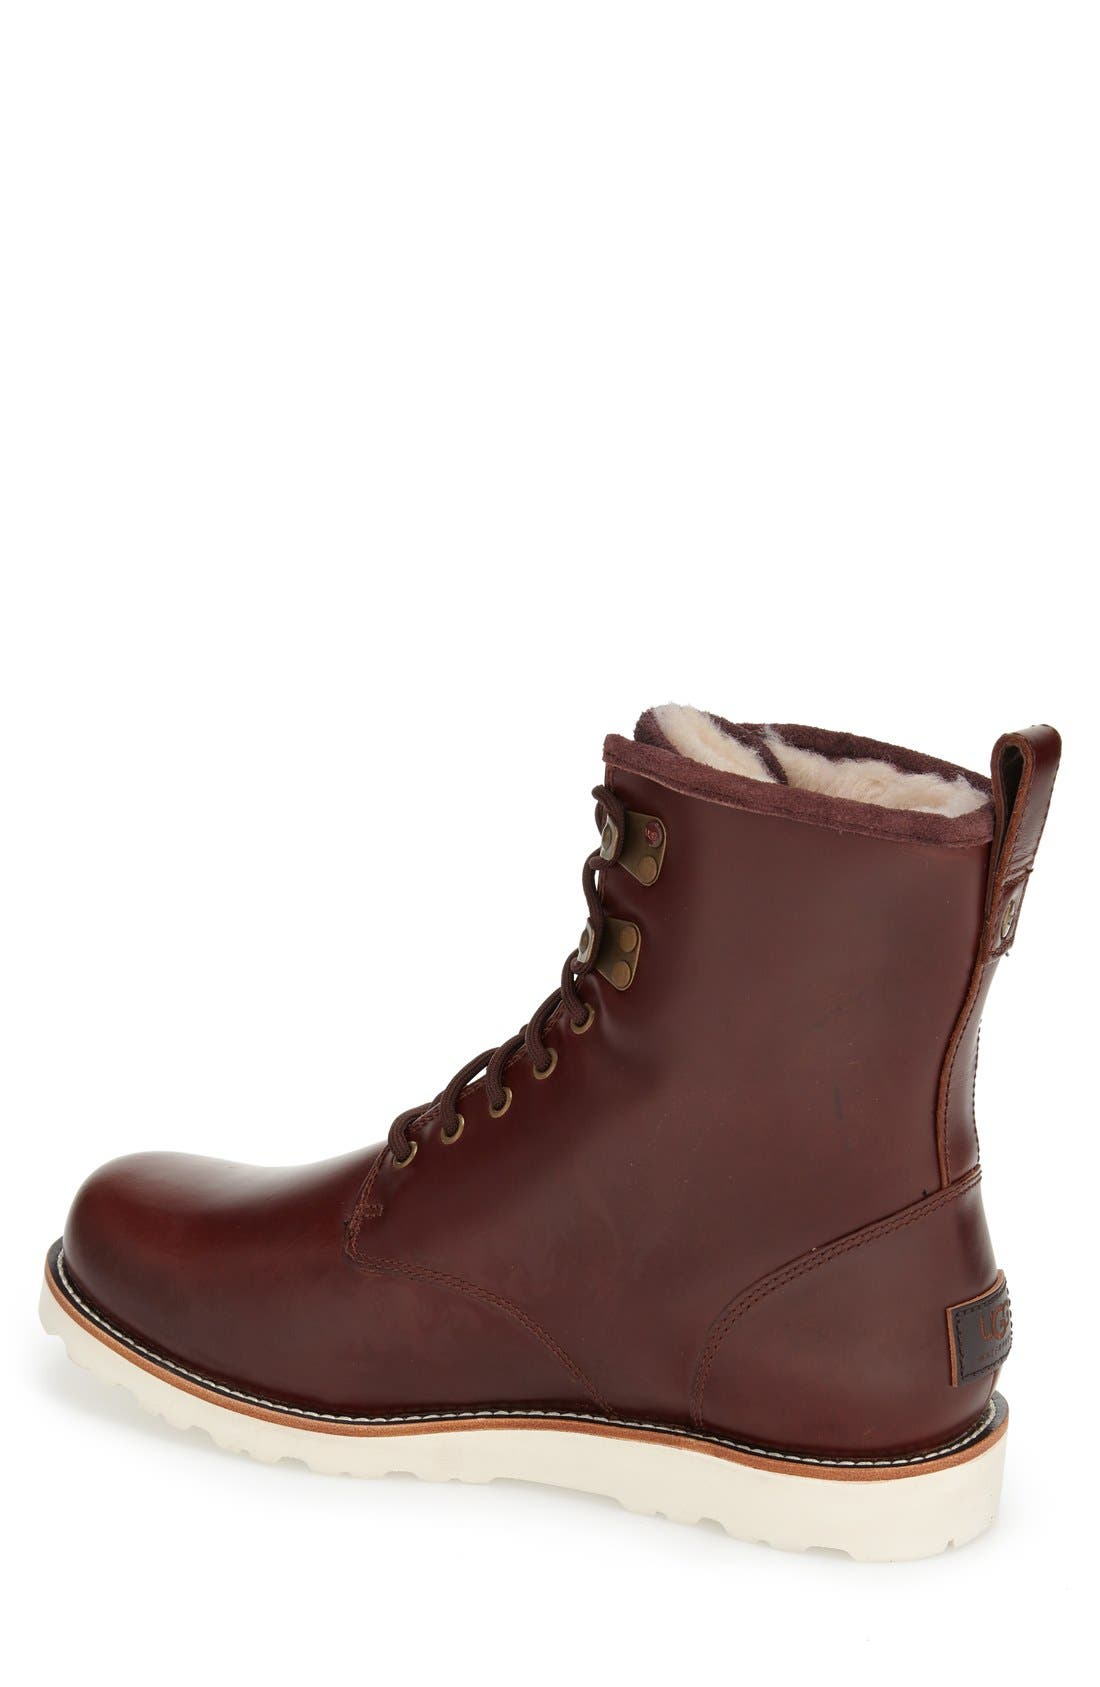 UGG<SUP>®</SUP>, Hannen Waterproof Boot, Alternate thumbnail 2, color, 604